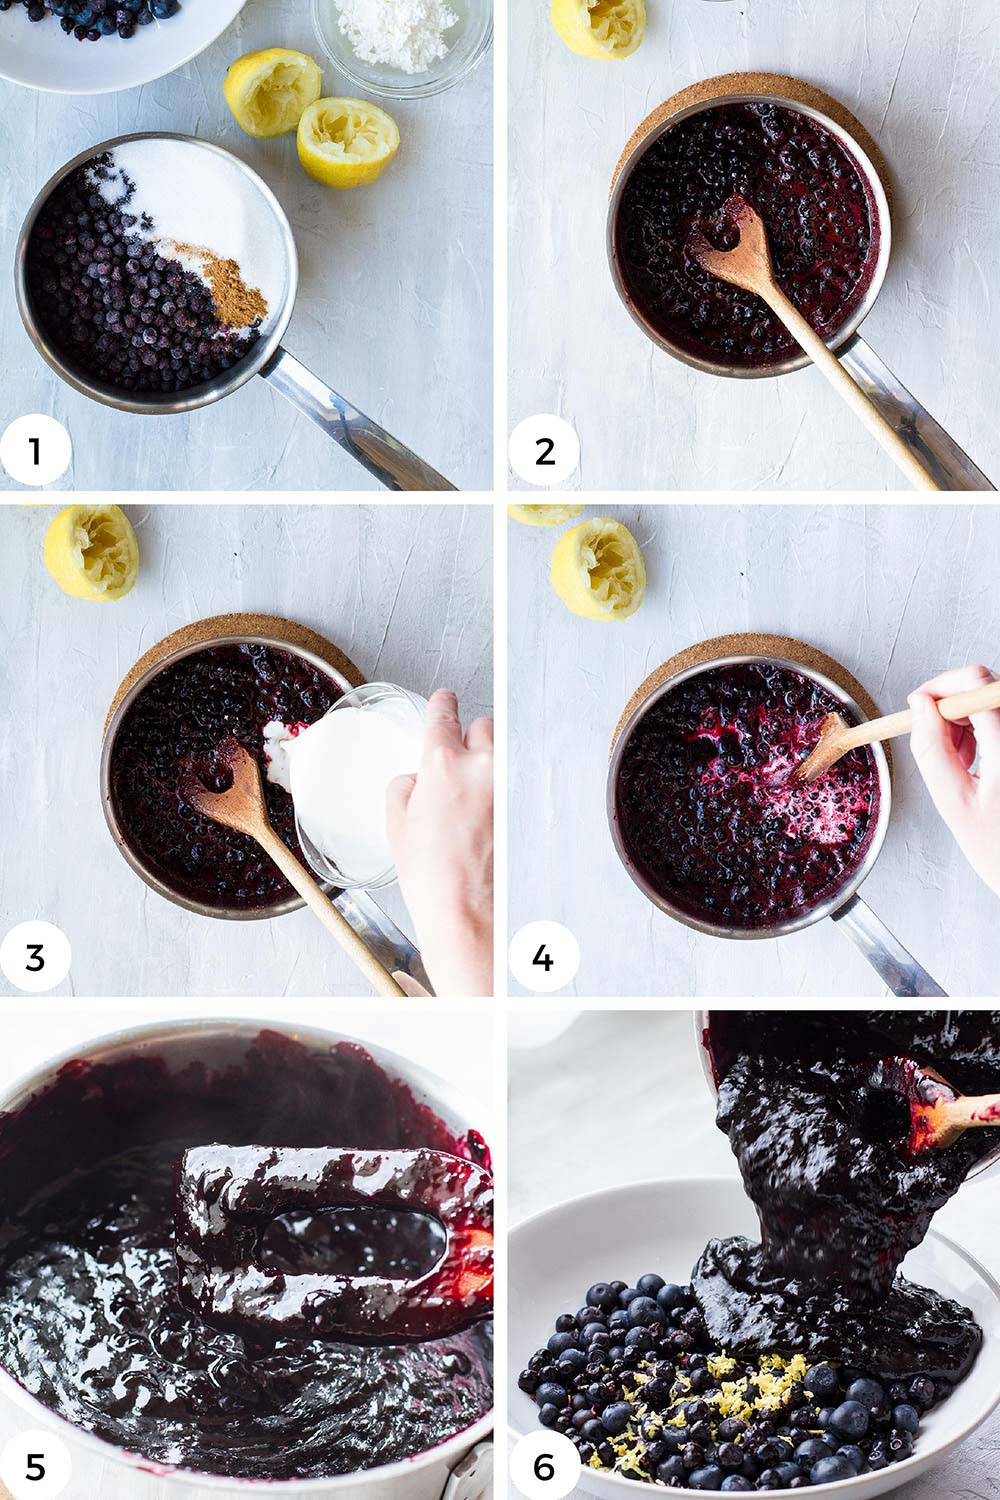 Steps to make cooked blueberry filling.